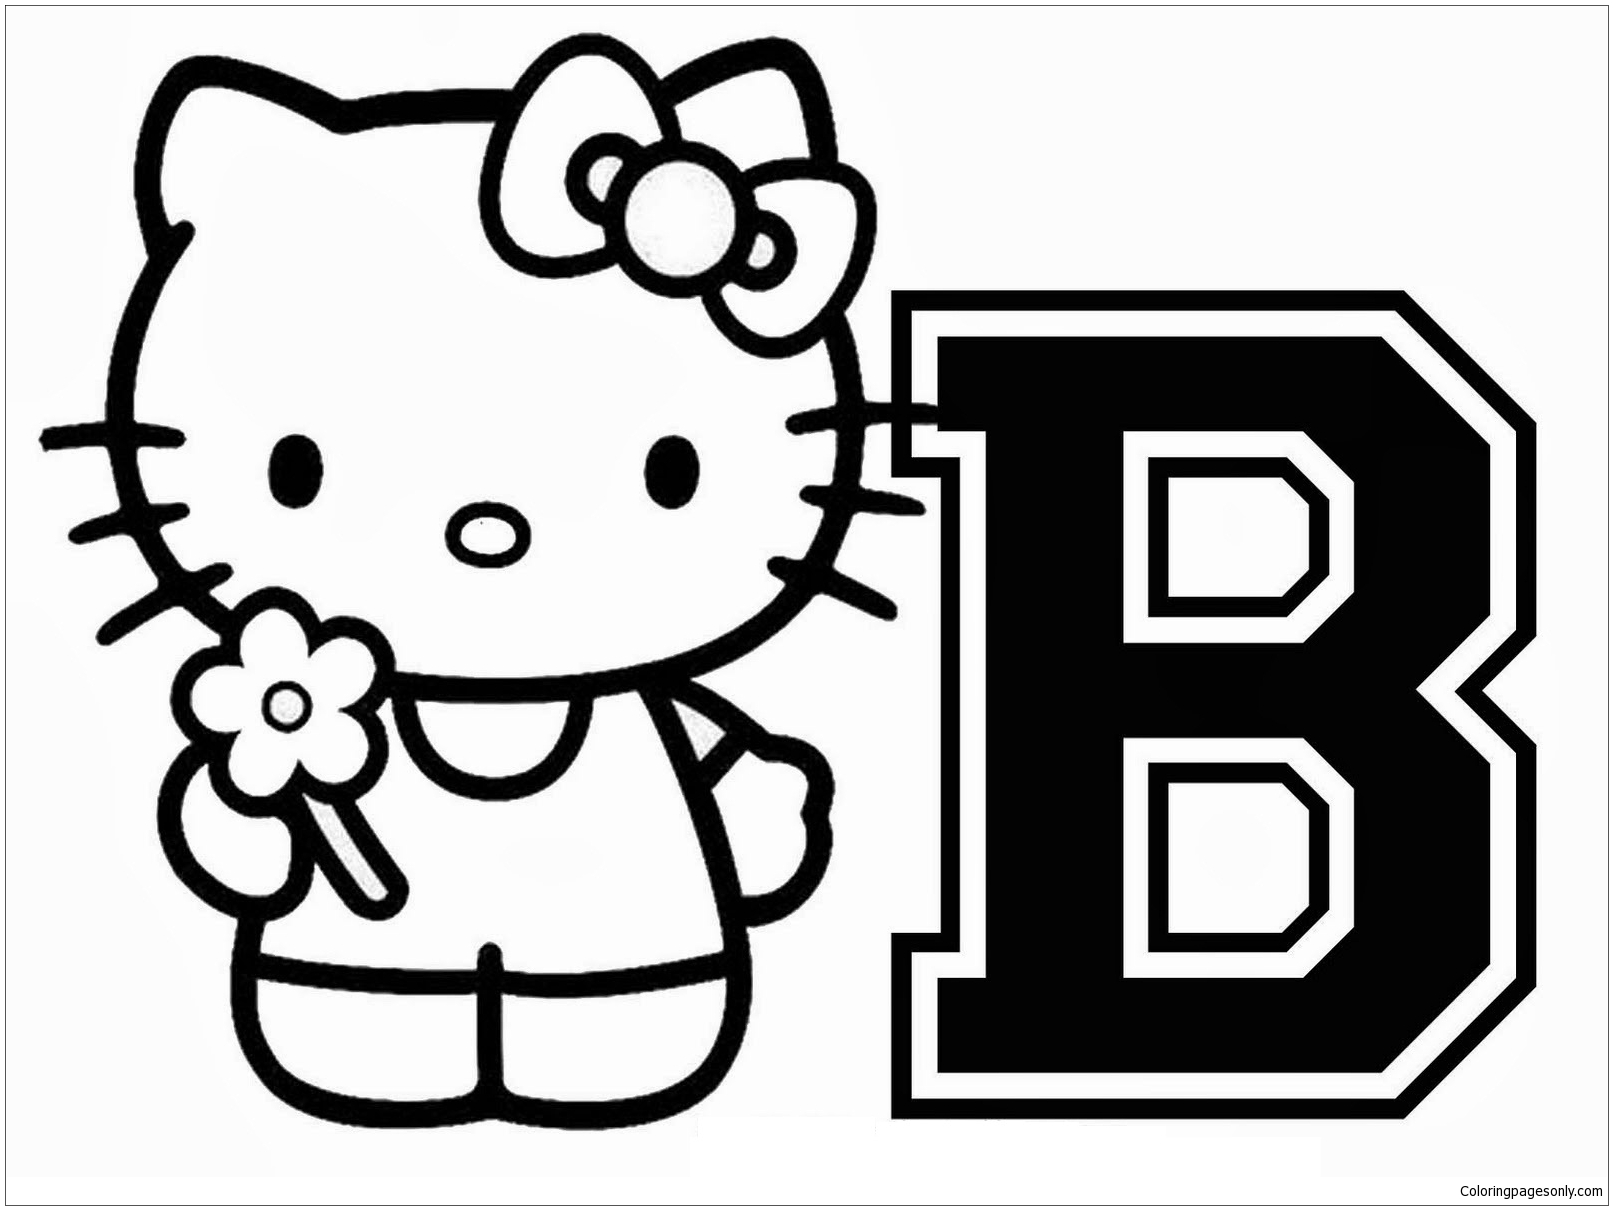 About Hello Kitty With The Alphabet B Coloring Page